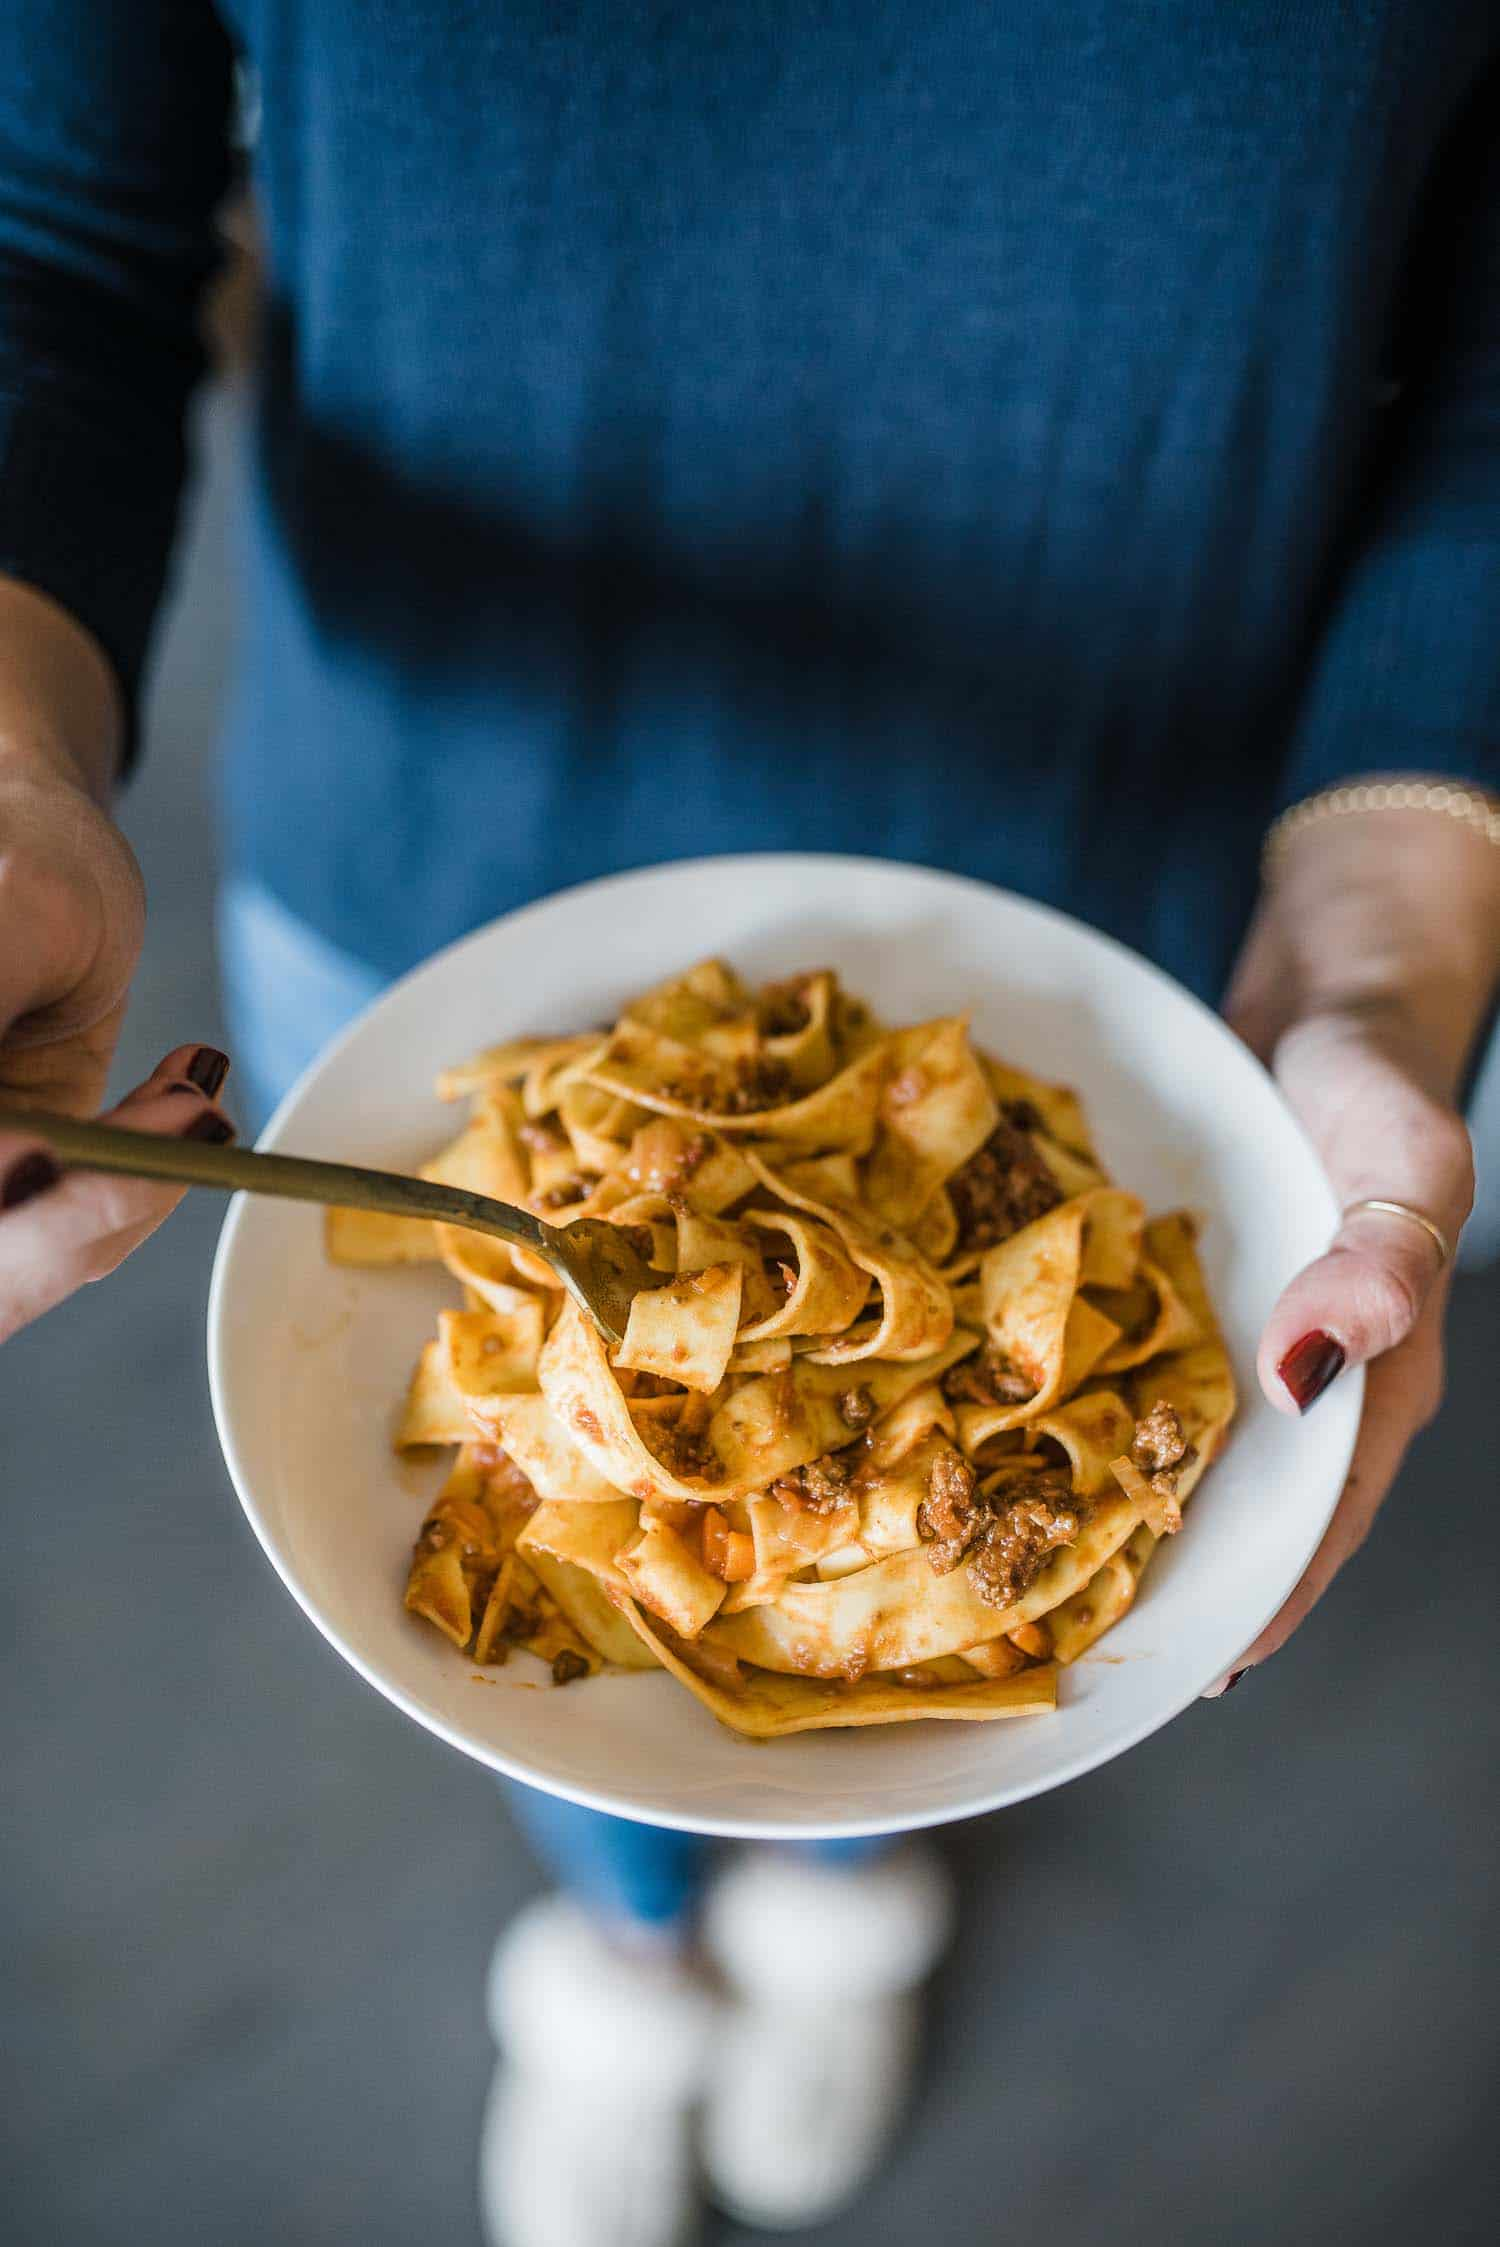 Parpadelle Bolognese To Cure Your Winter Blues